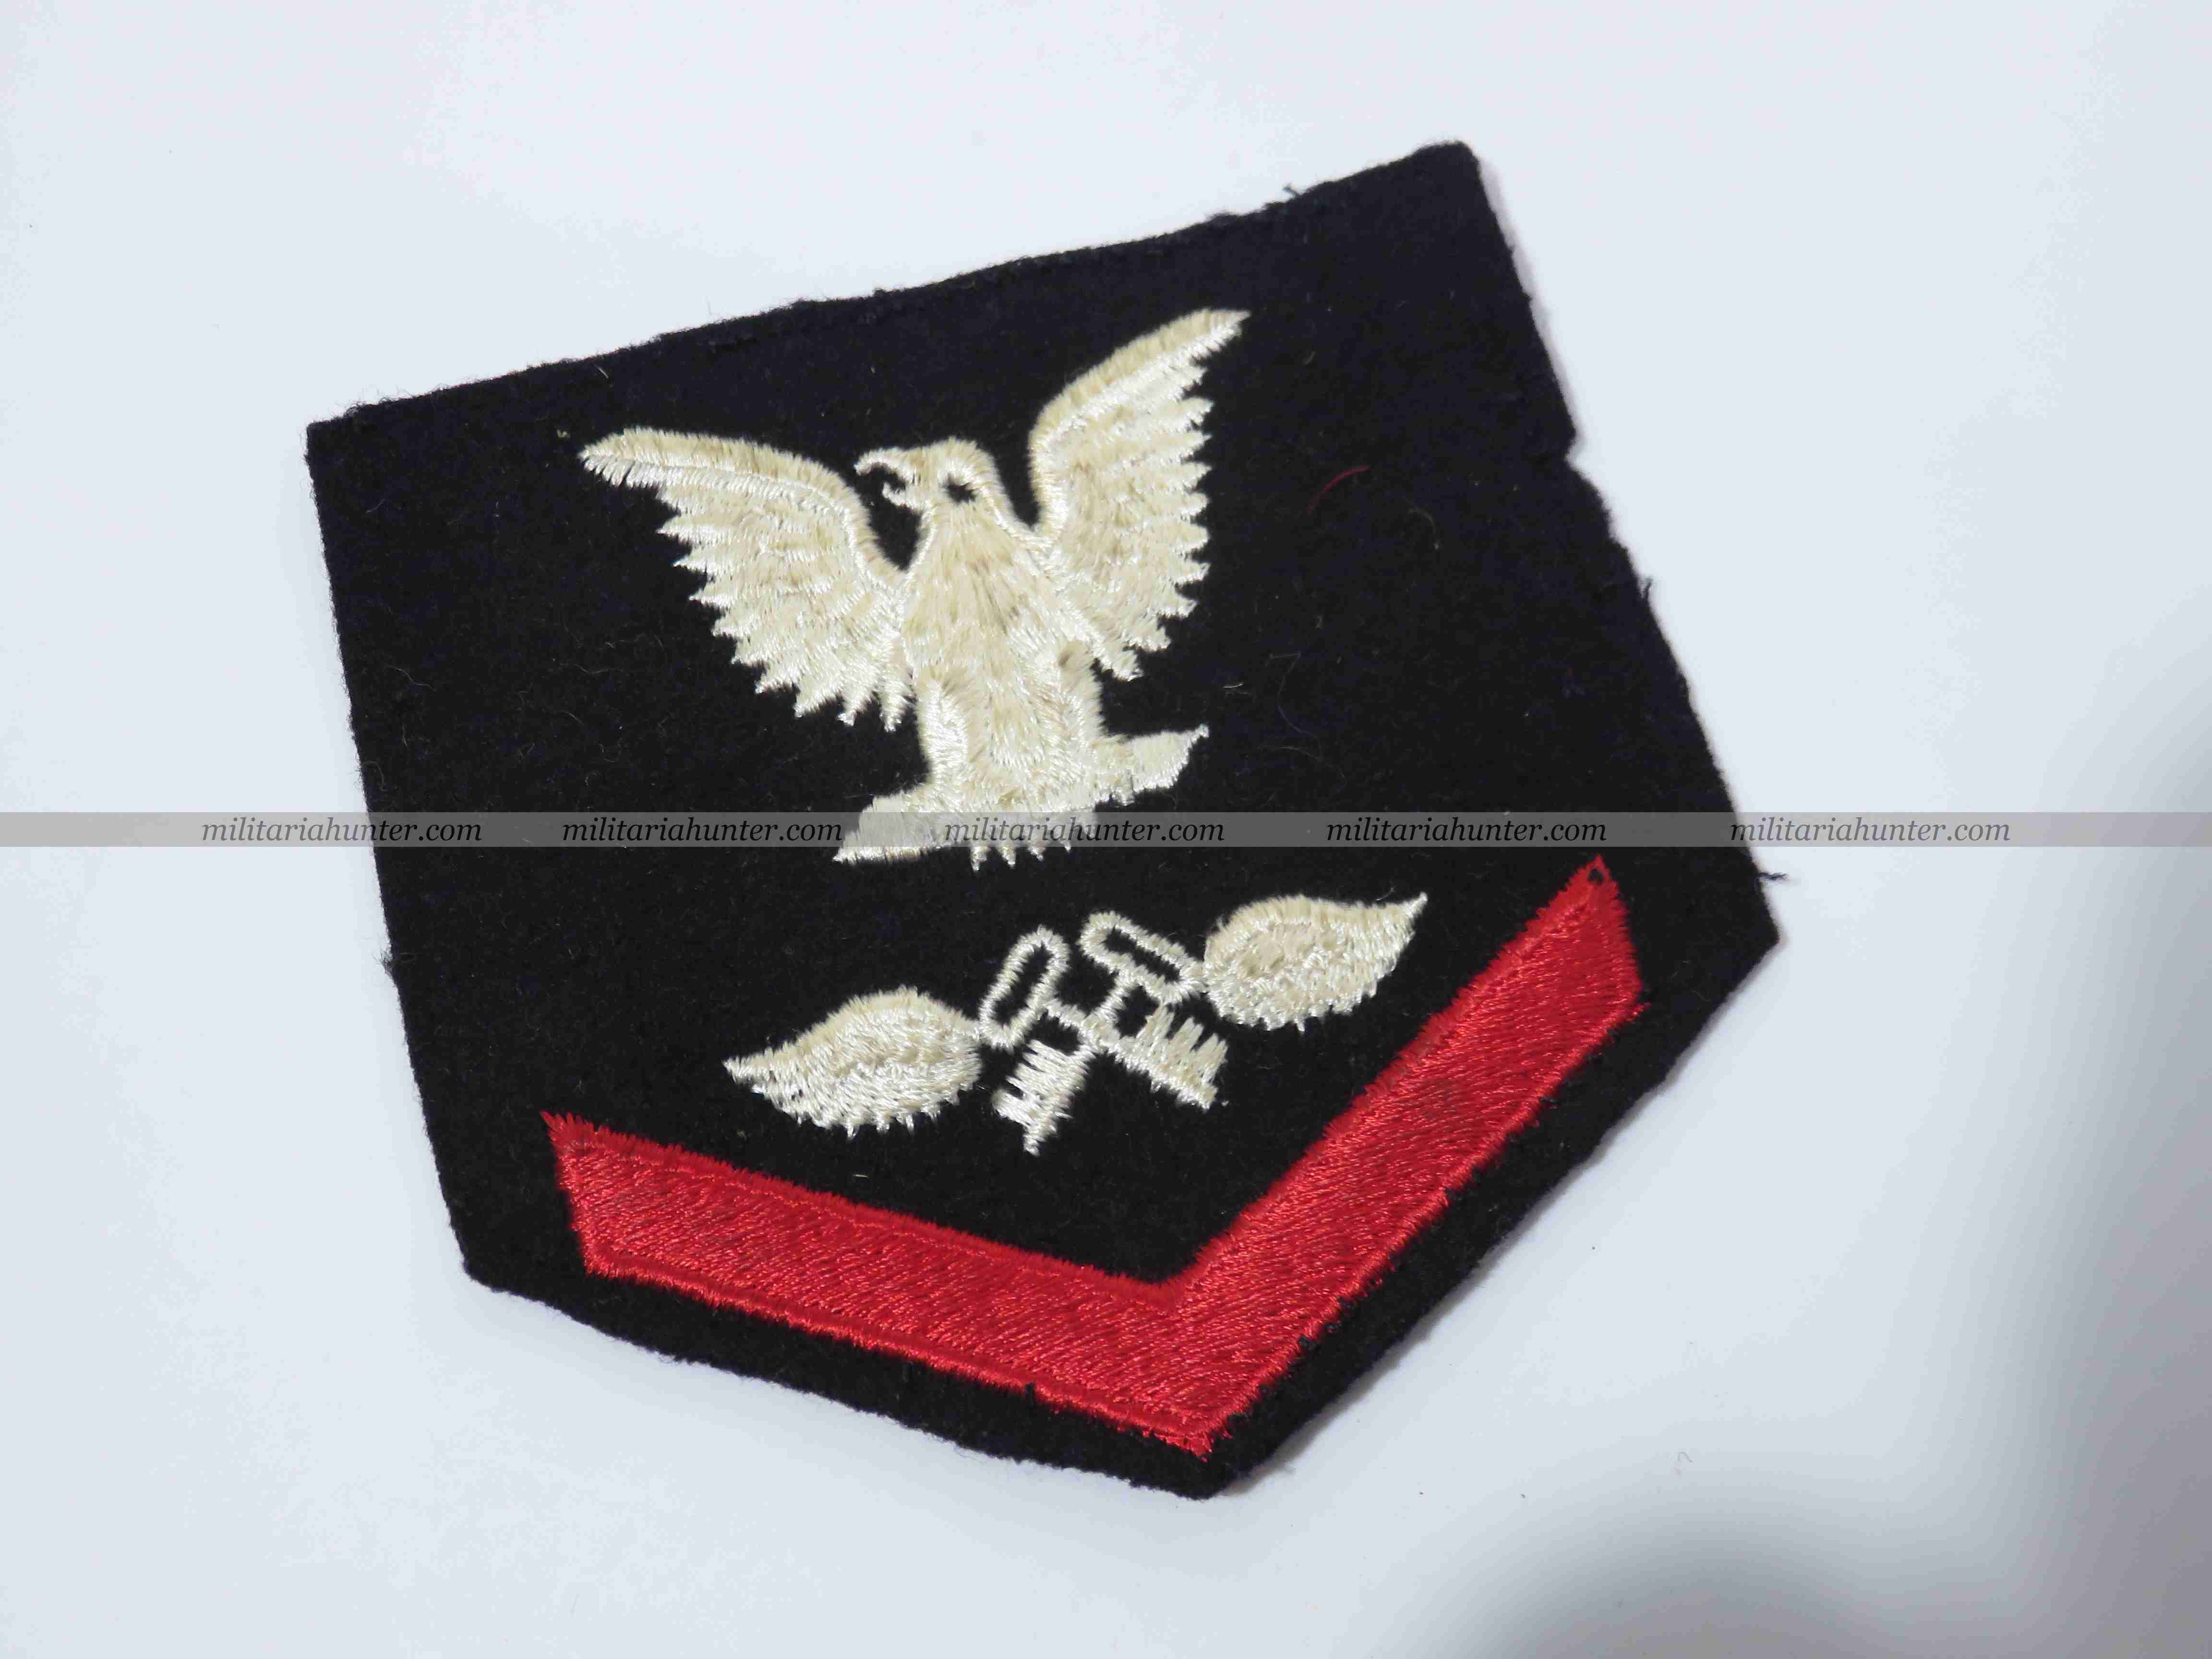 militaria : ww2 + Korea US Navy enlisted badge 3rd class petty officer aviation storekeeper